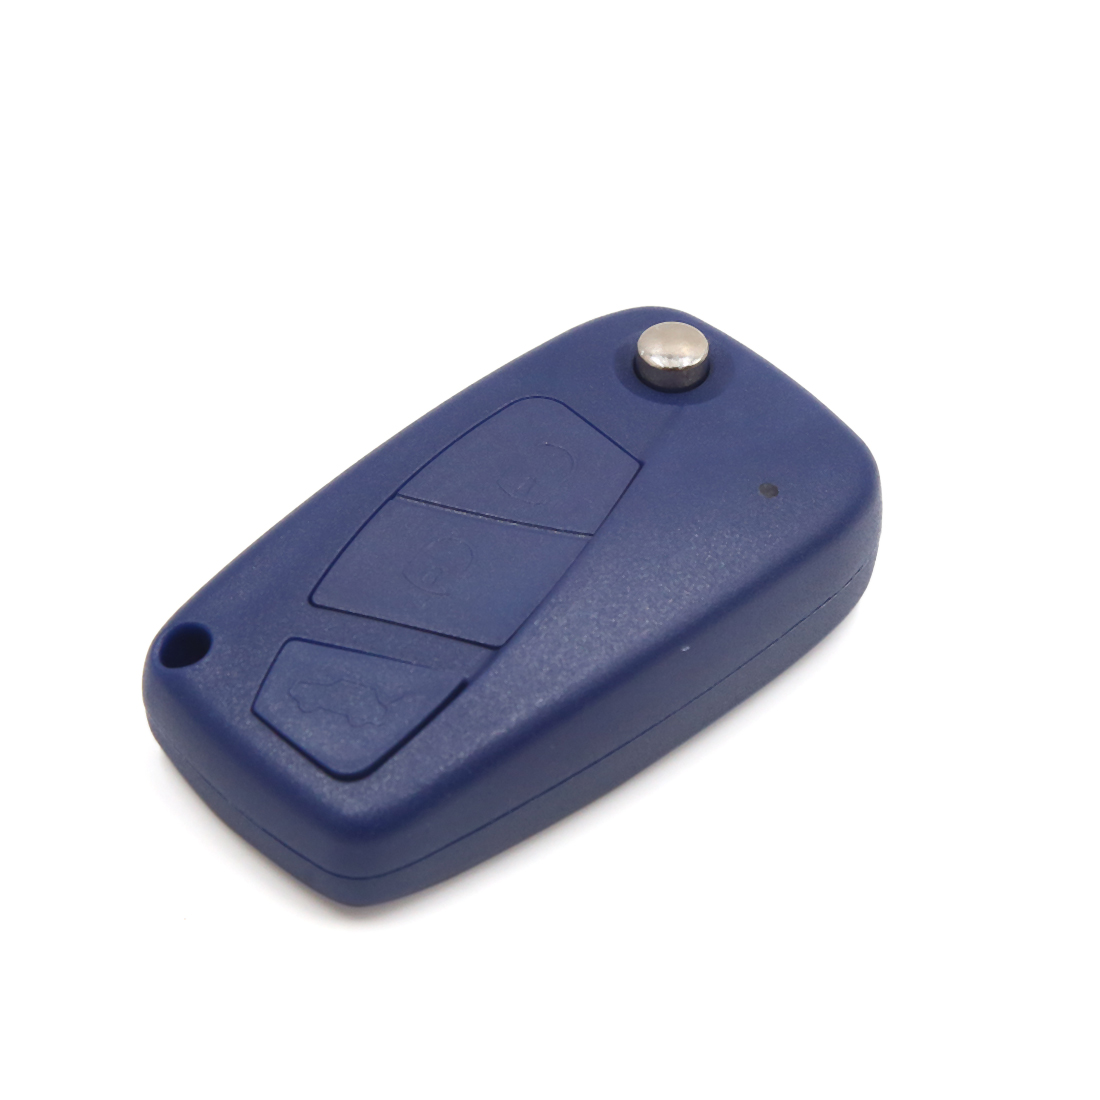 Blue 3 Buttons Flip Folding Uncut Key Remote Fob Clicker Case Shell for FIAT